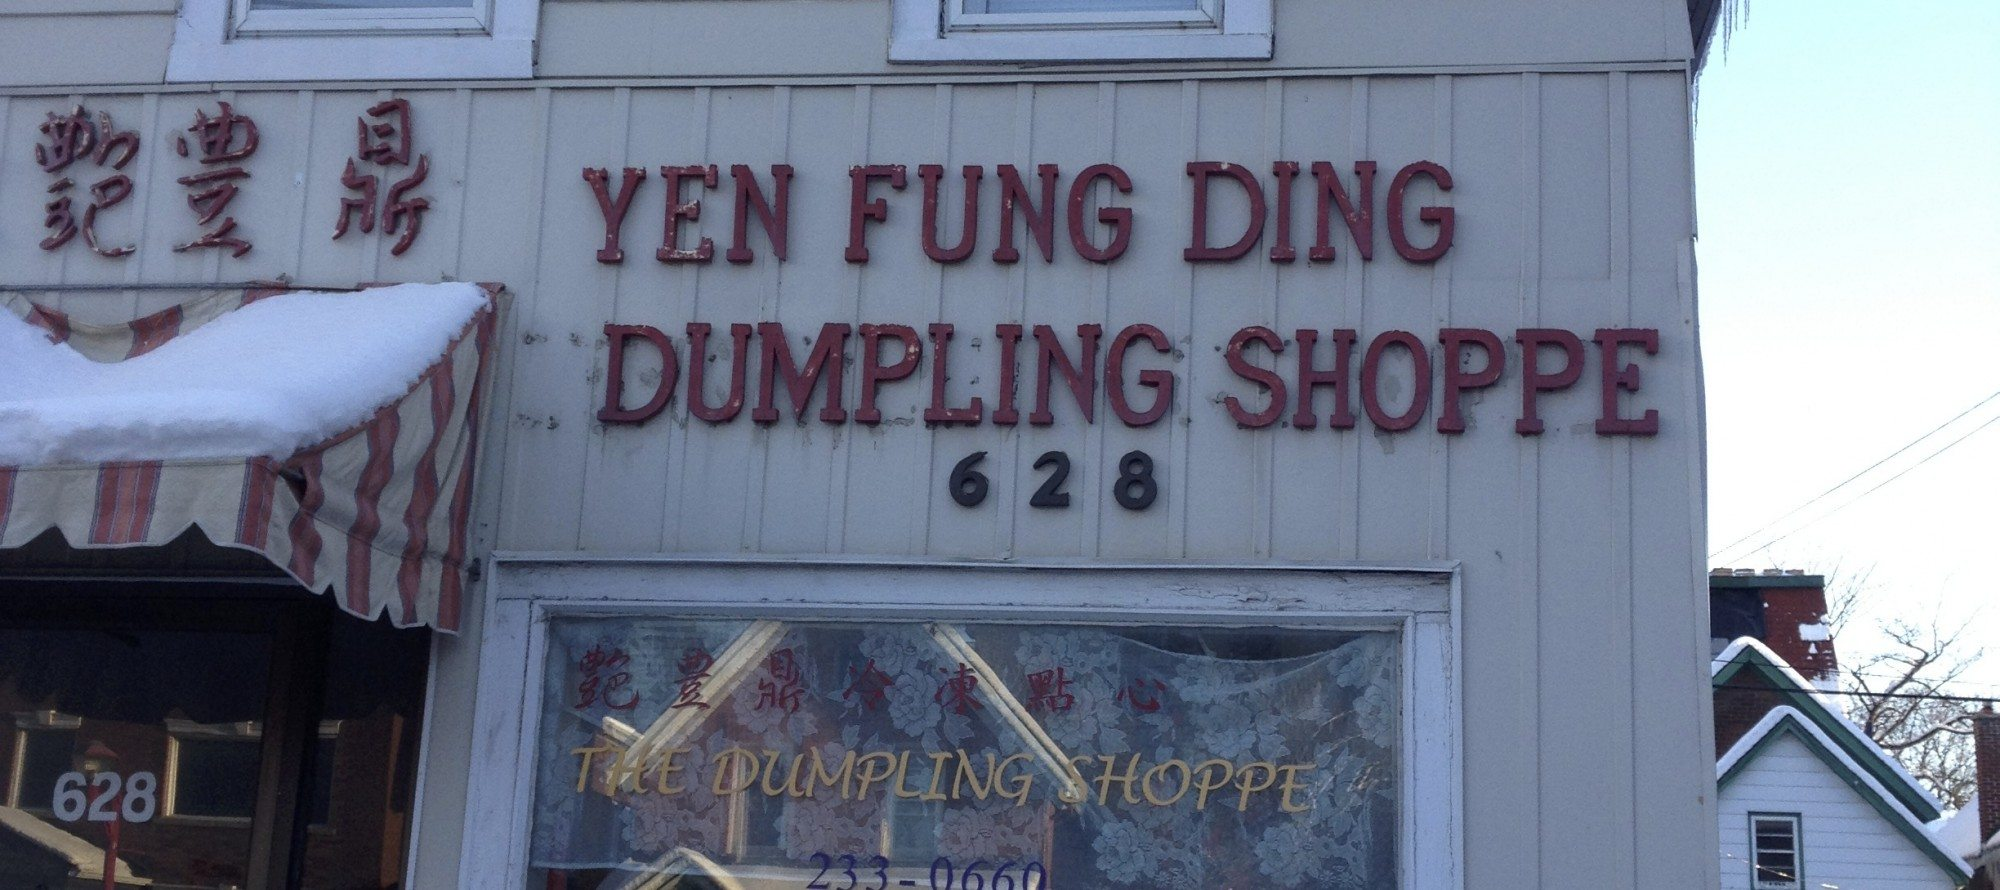 ANNE'S PICKS: Dumplings for dinner